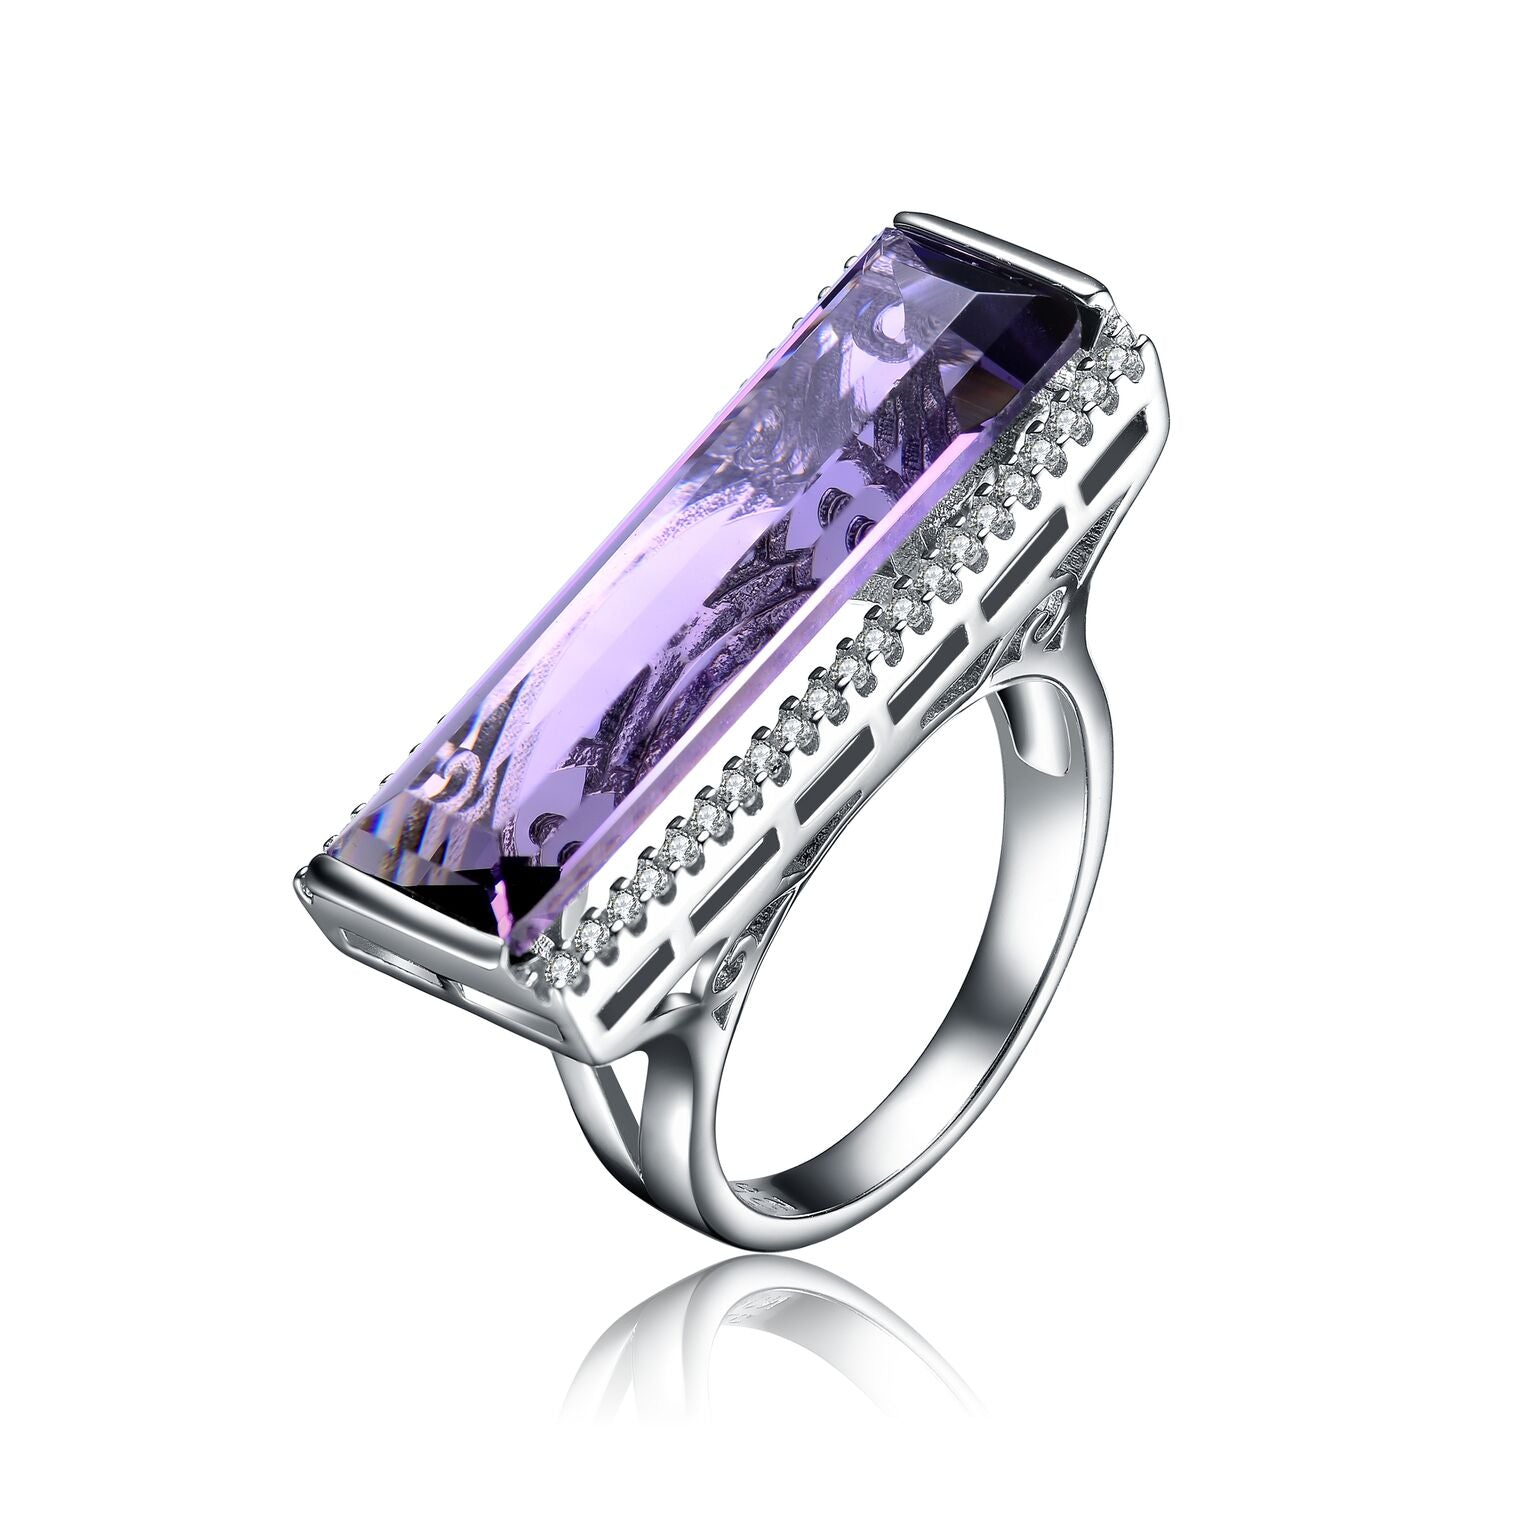 Lavender Goddess Ring